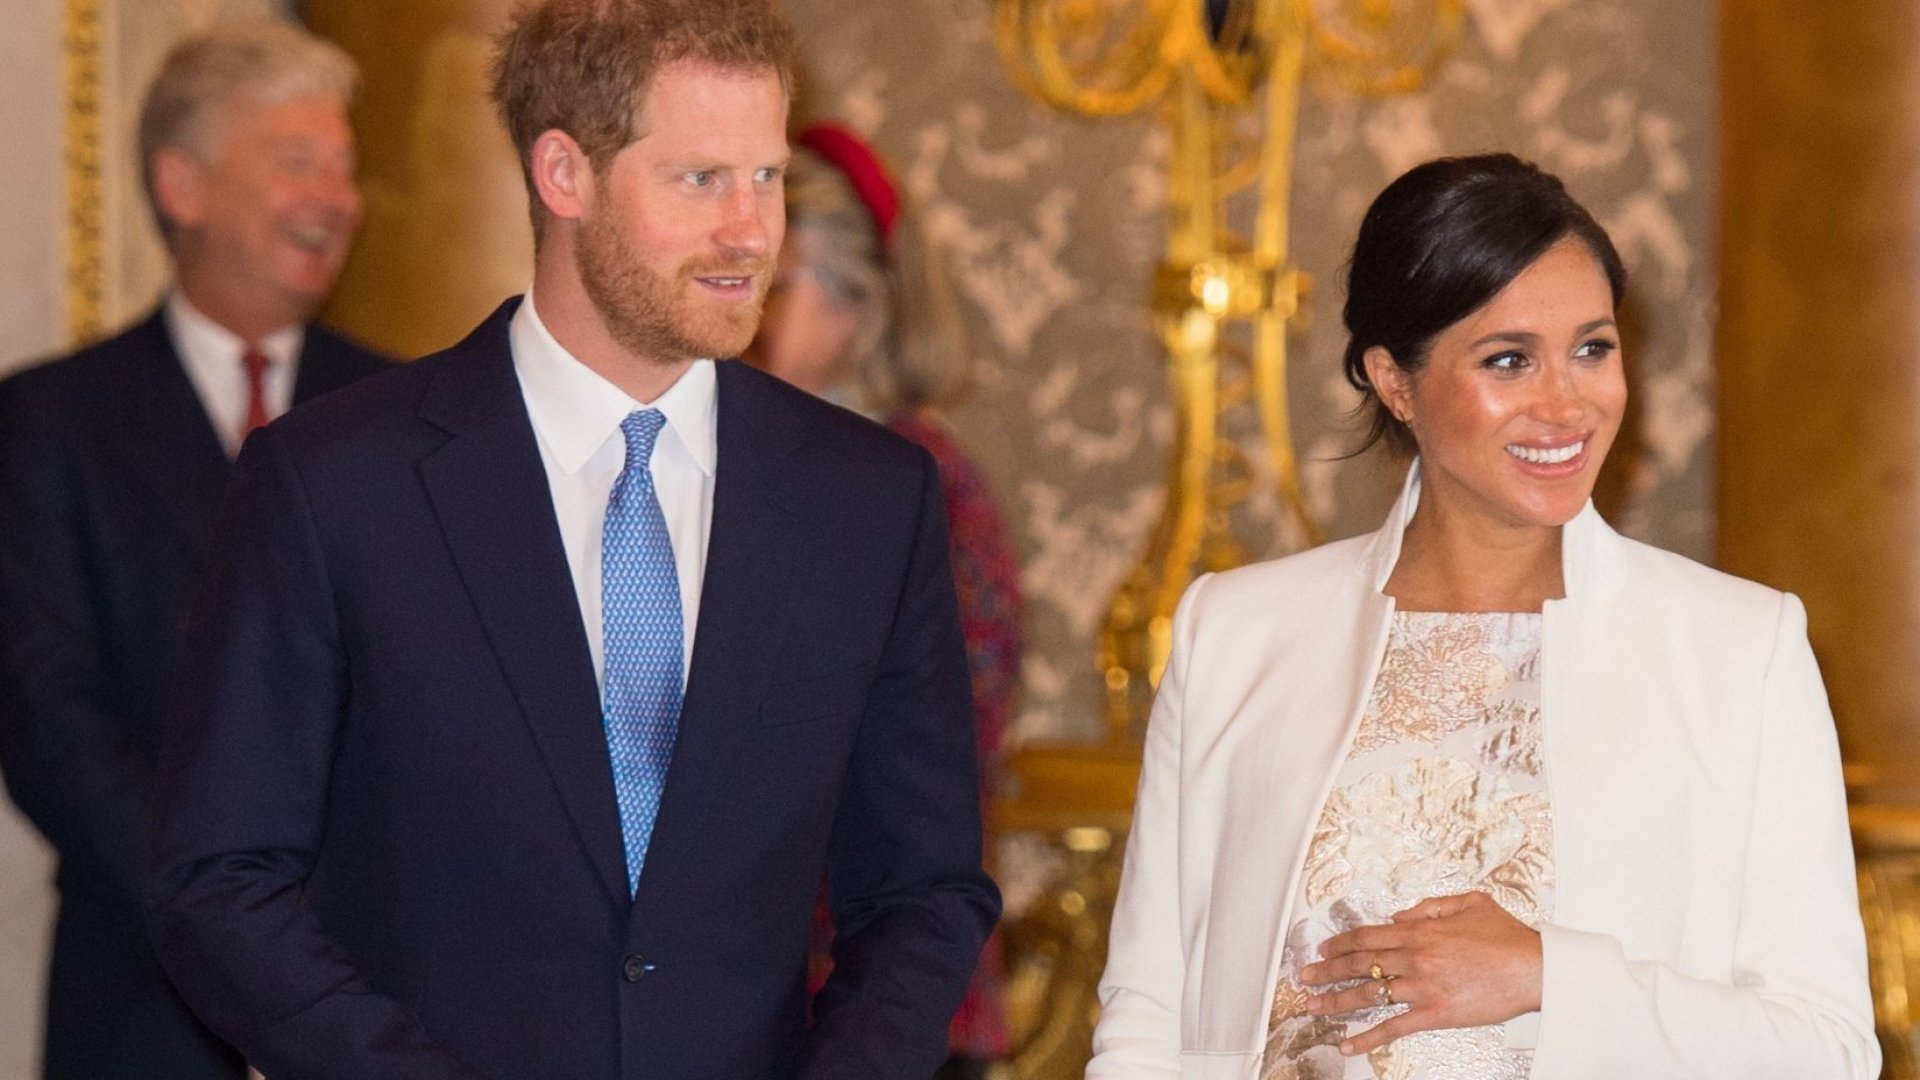 Prince Harry Is Taking Paternity Leave. That's Great for Meghan Markle But Also for Women Everywhere